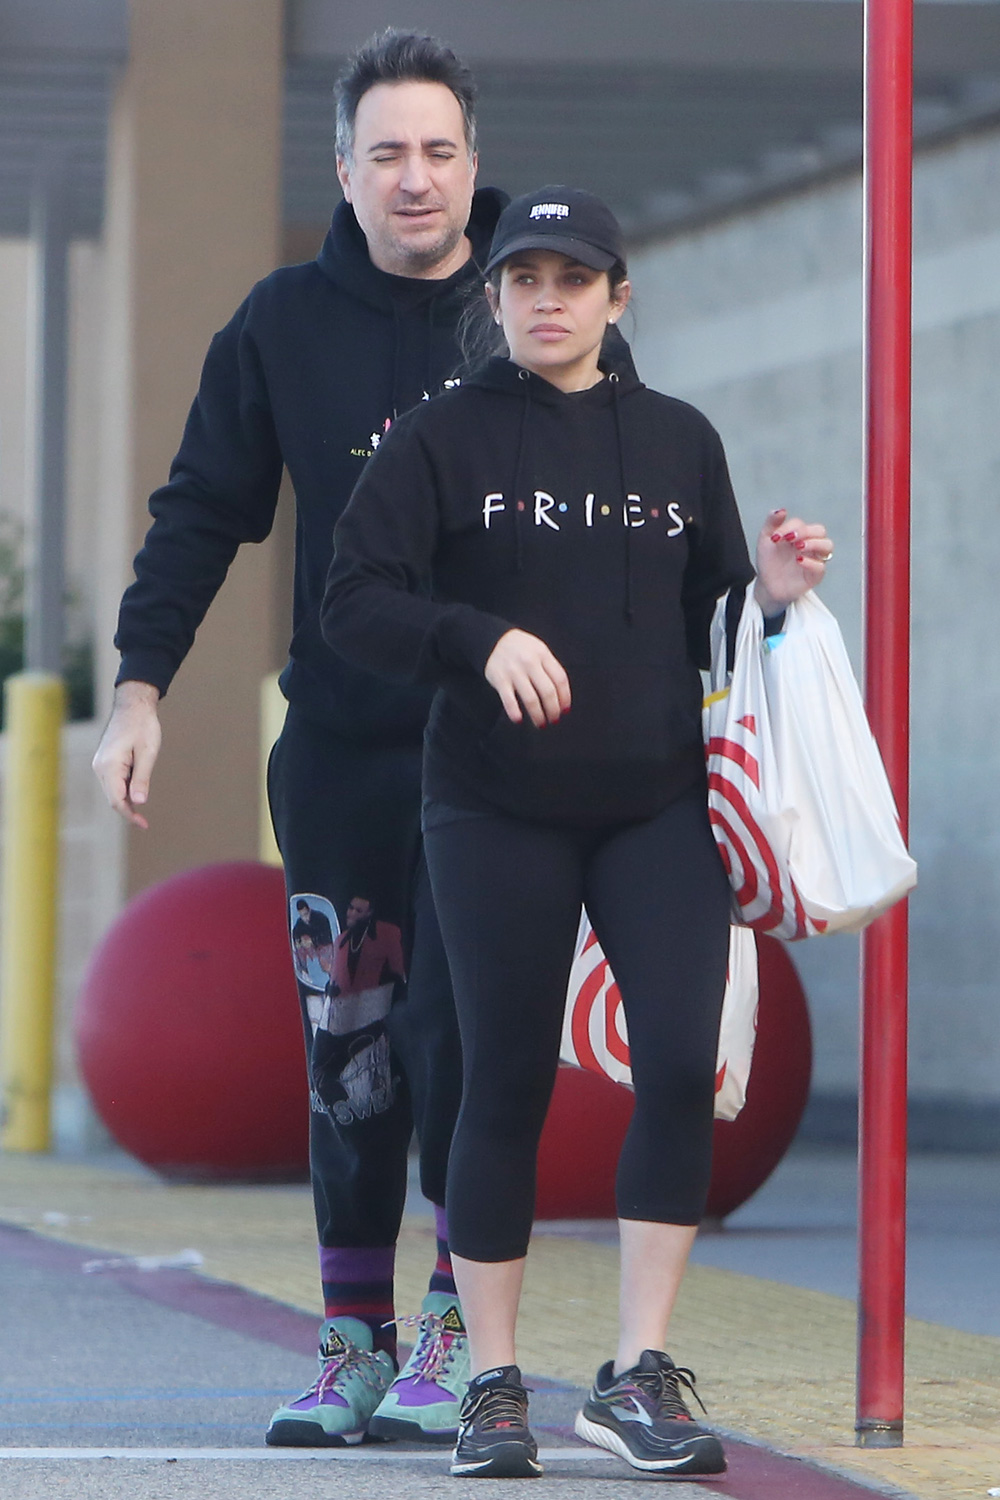 Danielle Fishel and her husband Jensen Karp head to Target to stock up on cereal